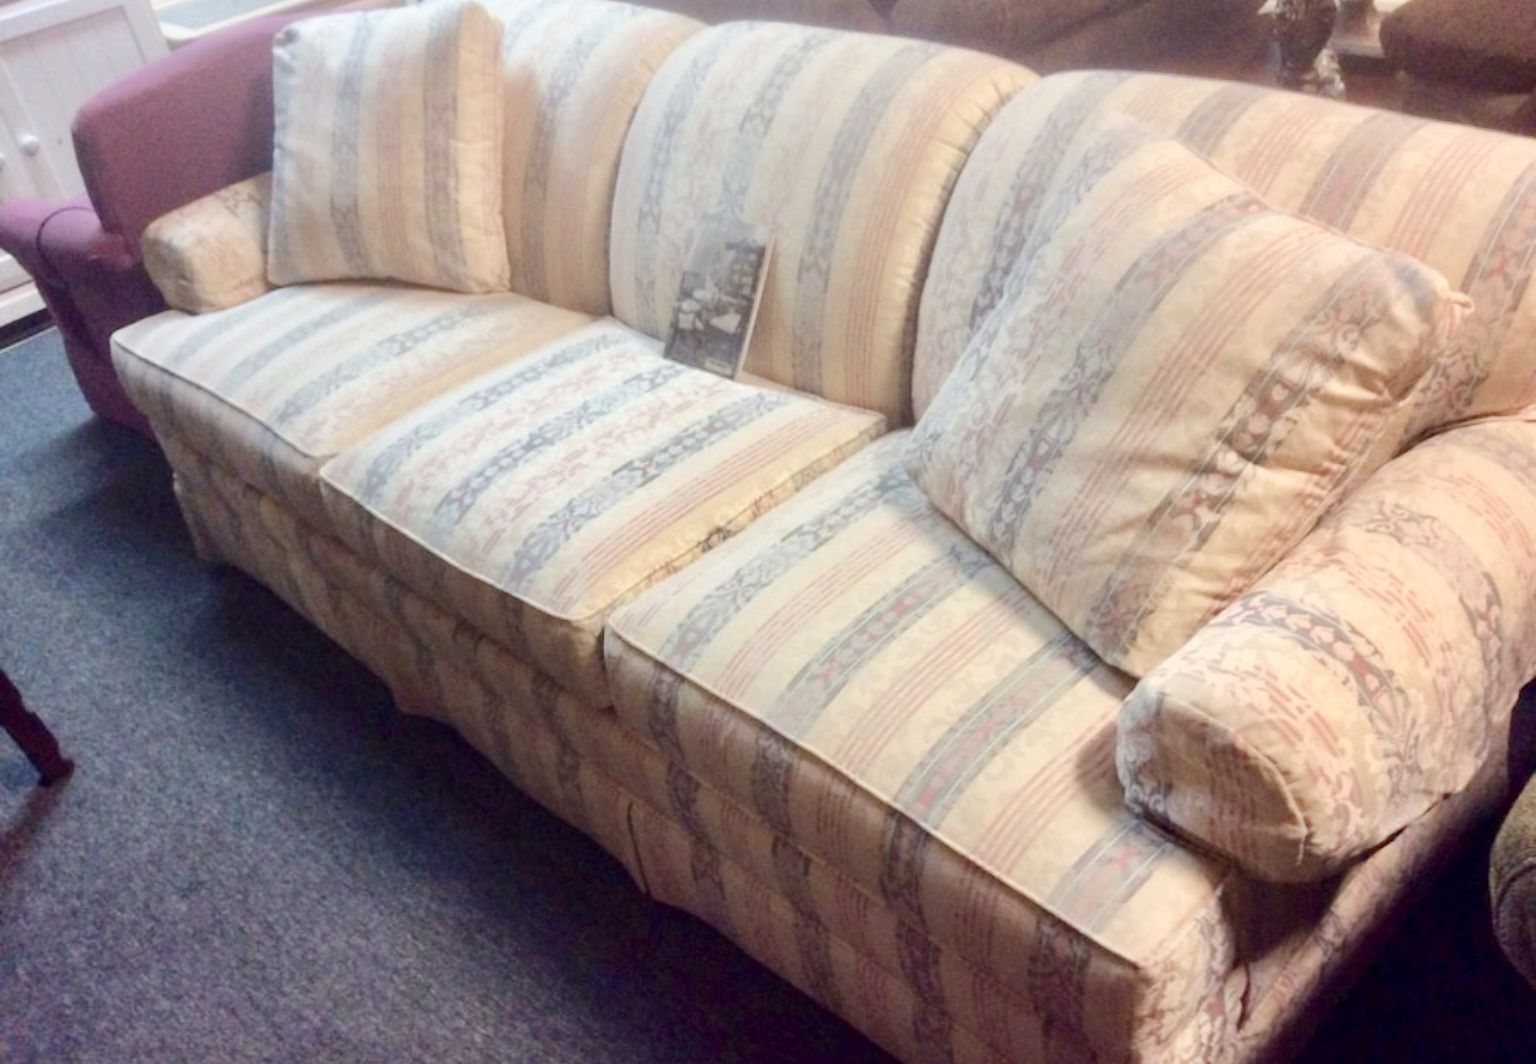 Terrific Thomasville Sofa Great Shape Great Buy On This Very Gently Onthecornerstone Fun Painted Chair Ideas Images Onthecornerstoneorg